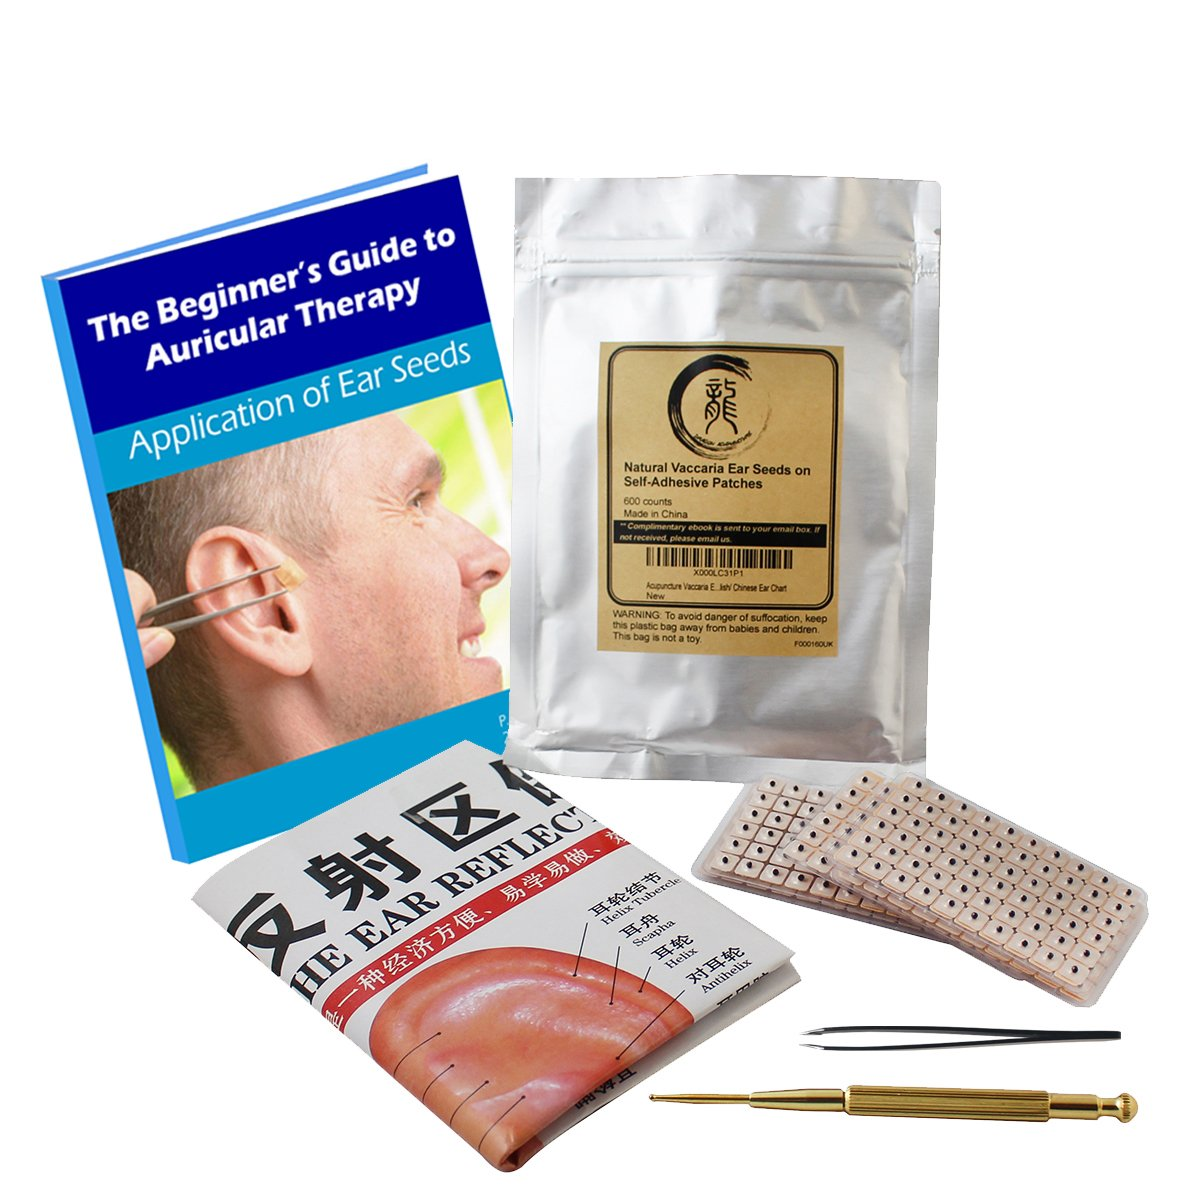 Multi-Condition Ear Seed Acupressure Kit 600 counts, eBook Placement Chart,  Probe, Acupuncture